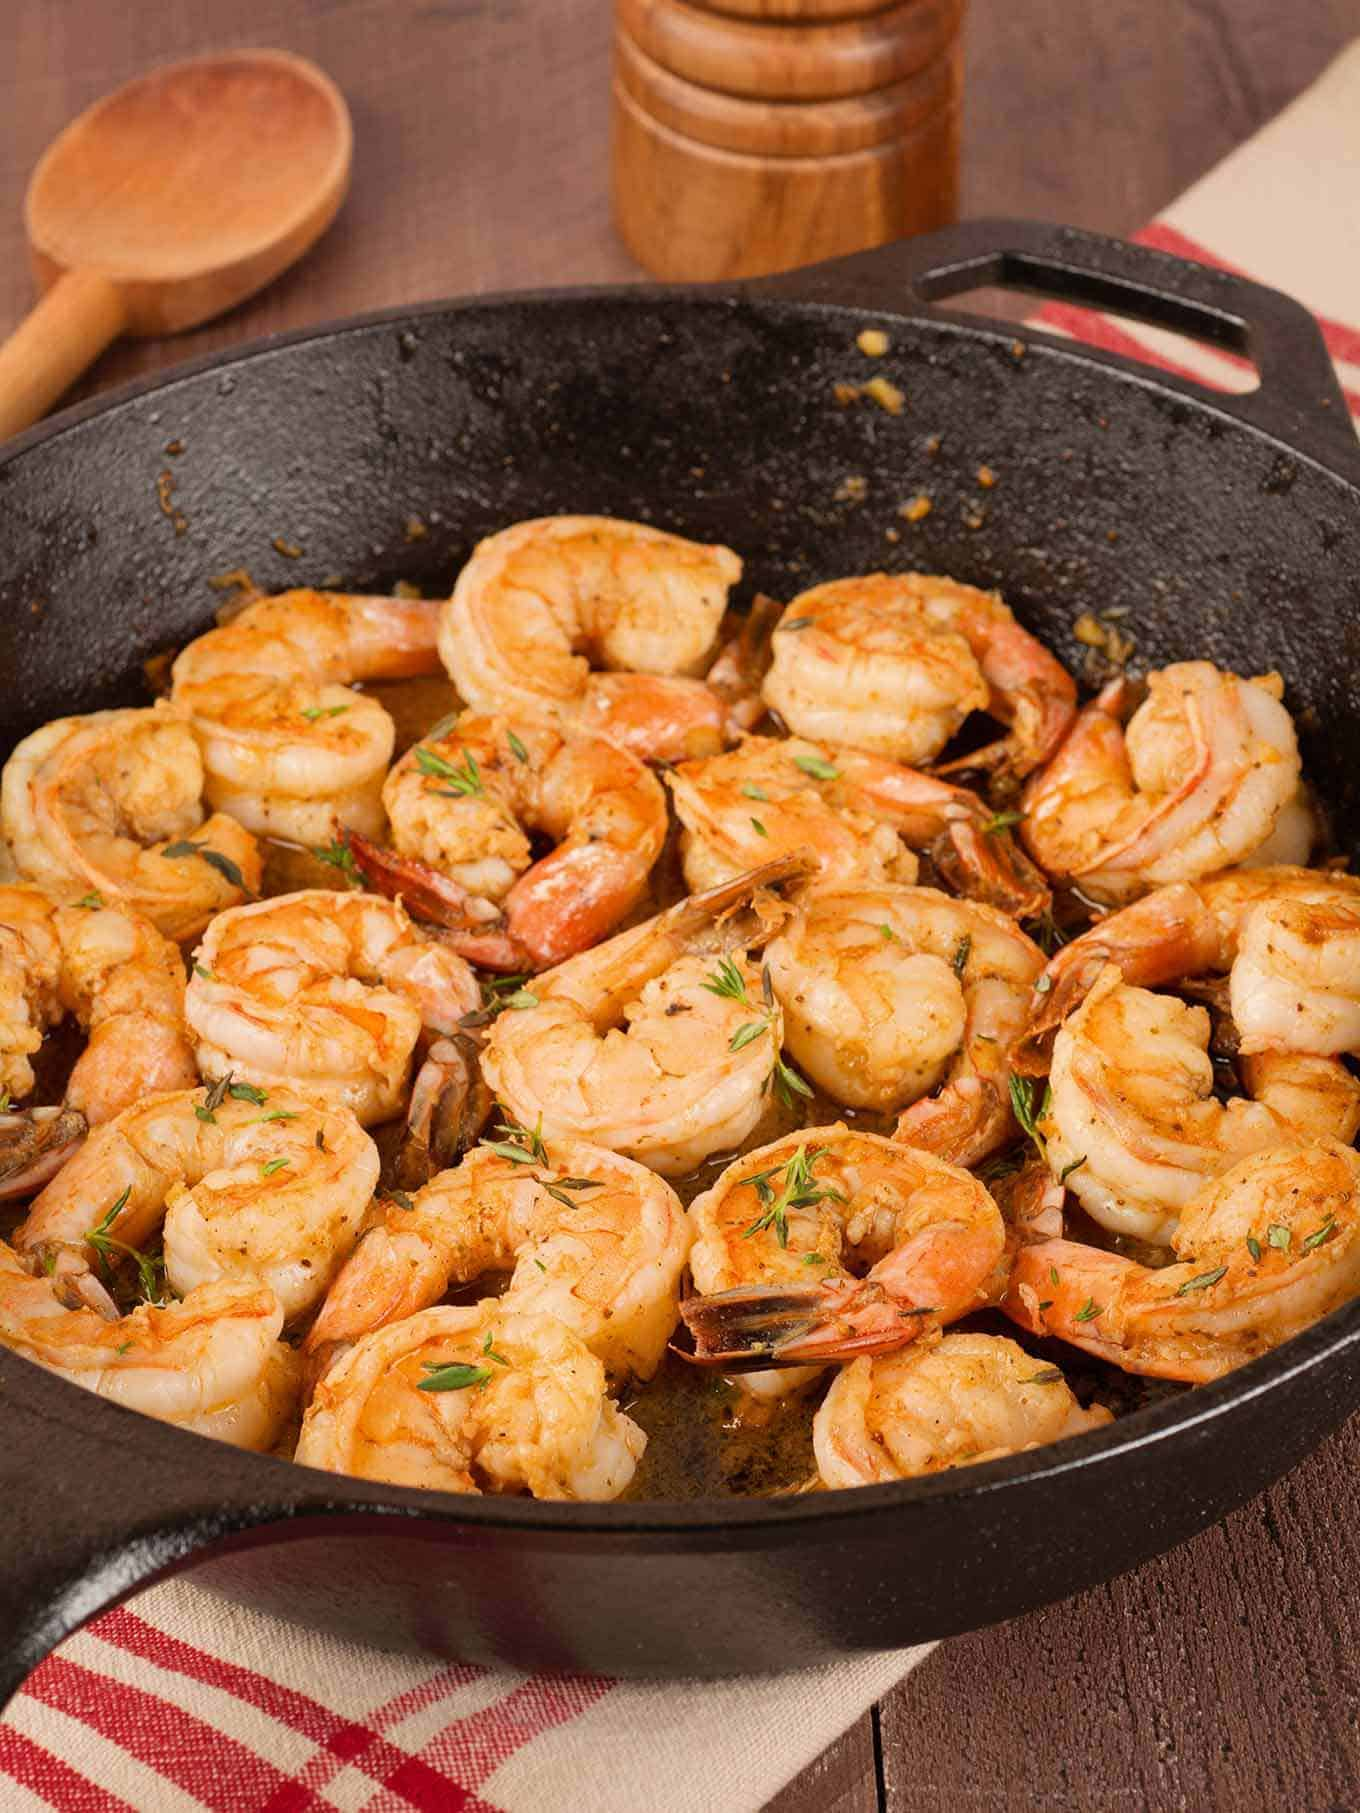 Sautéed shrimp in cast iron skillet seasoned with Old Bay Seasoning and garnished with fresh thyme leaves.